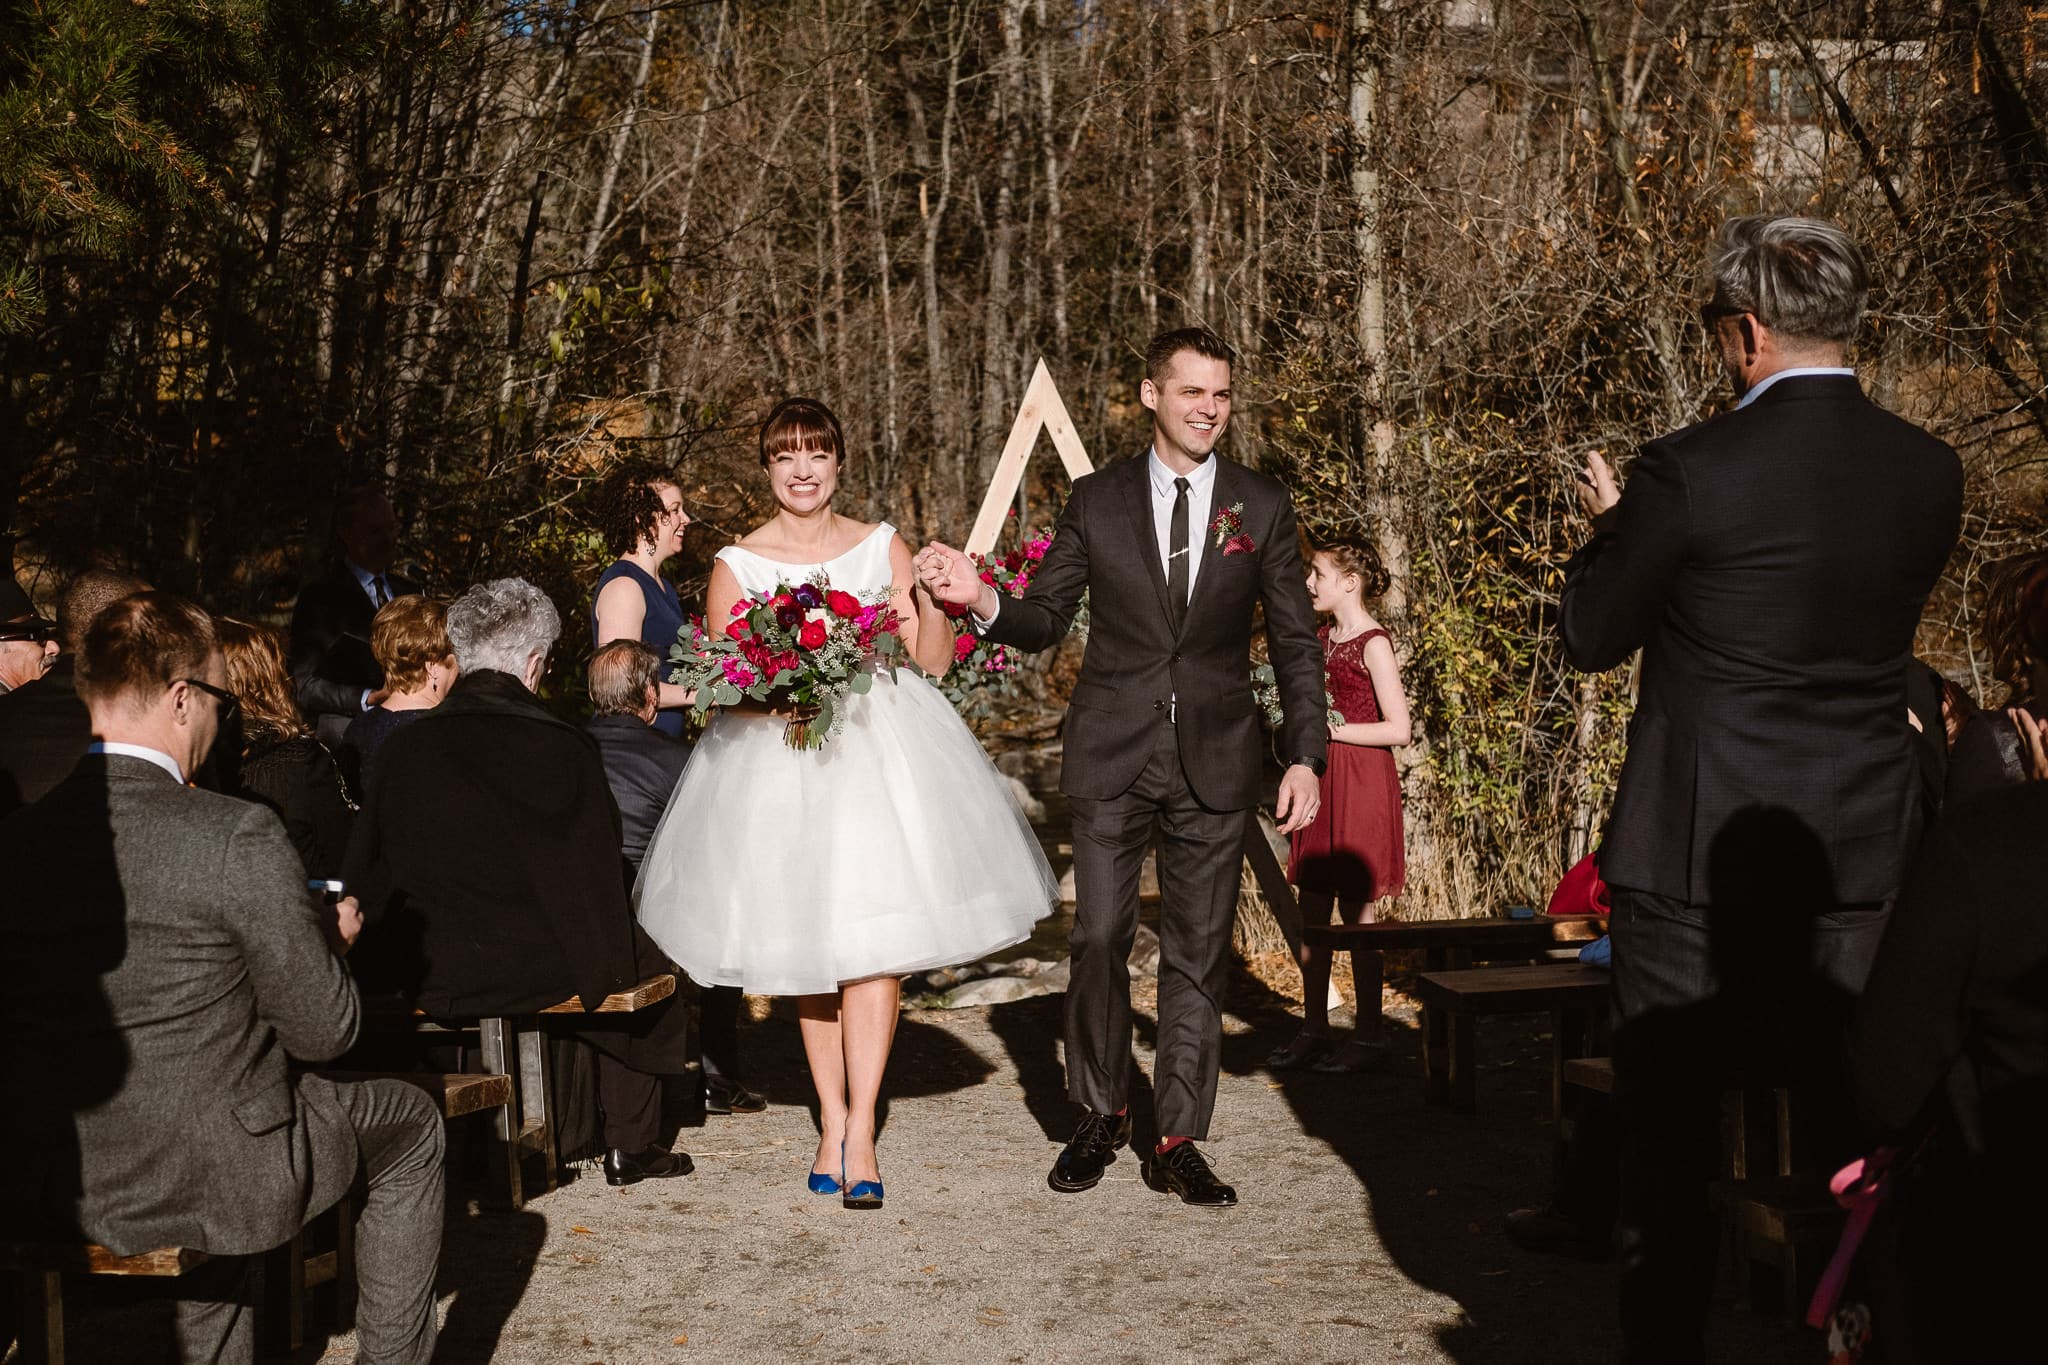 Silverthorne Pavilion wedding ceremony, Colorado wedding photographer, outdoor wedding ceremony, Colorado mountain wedding venues, bride and groom recessional